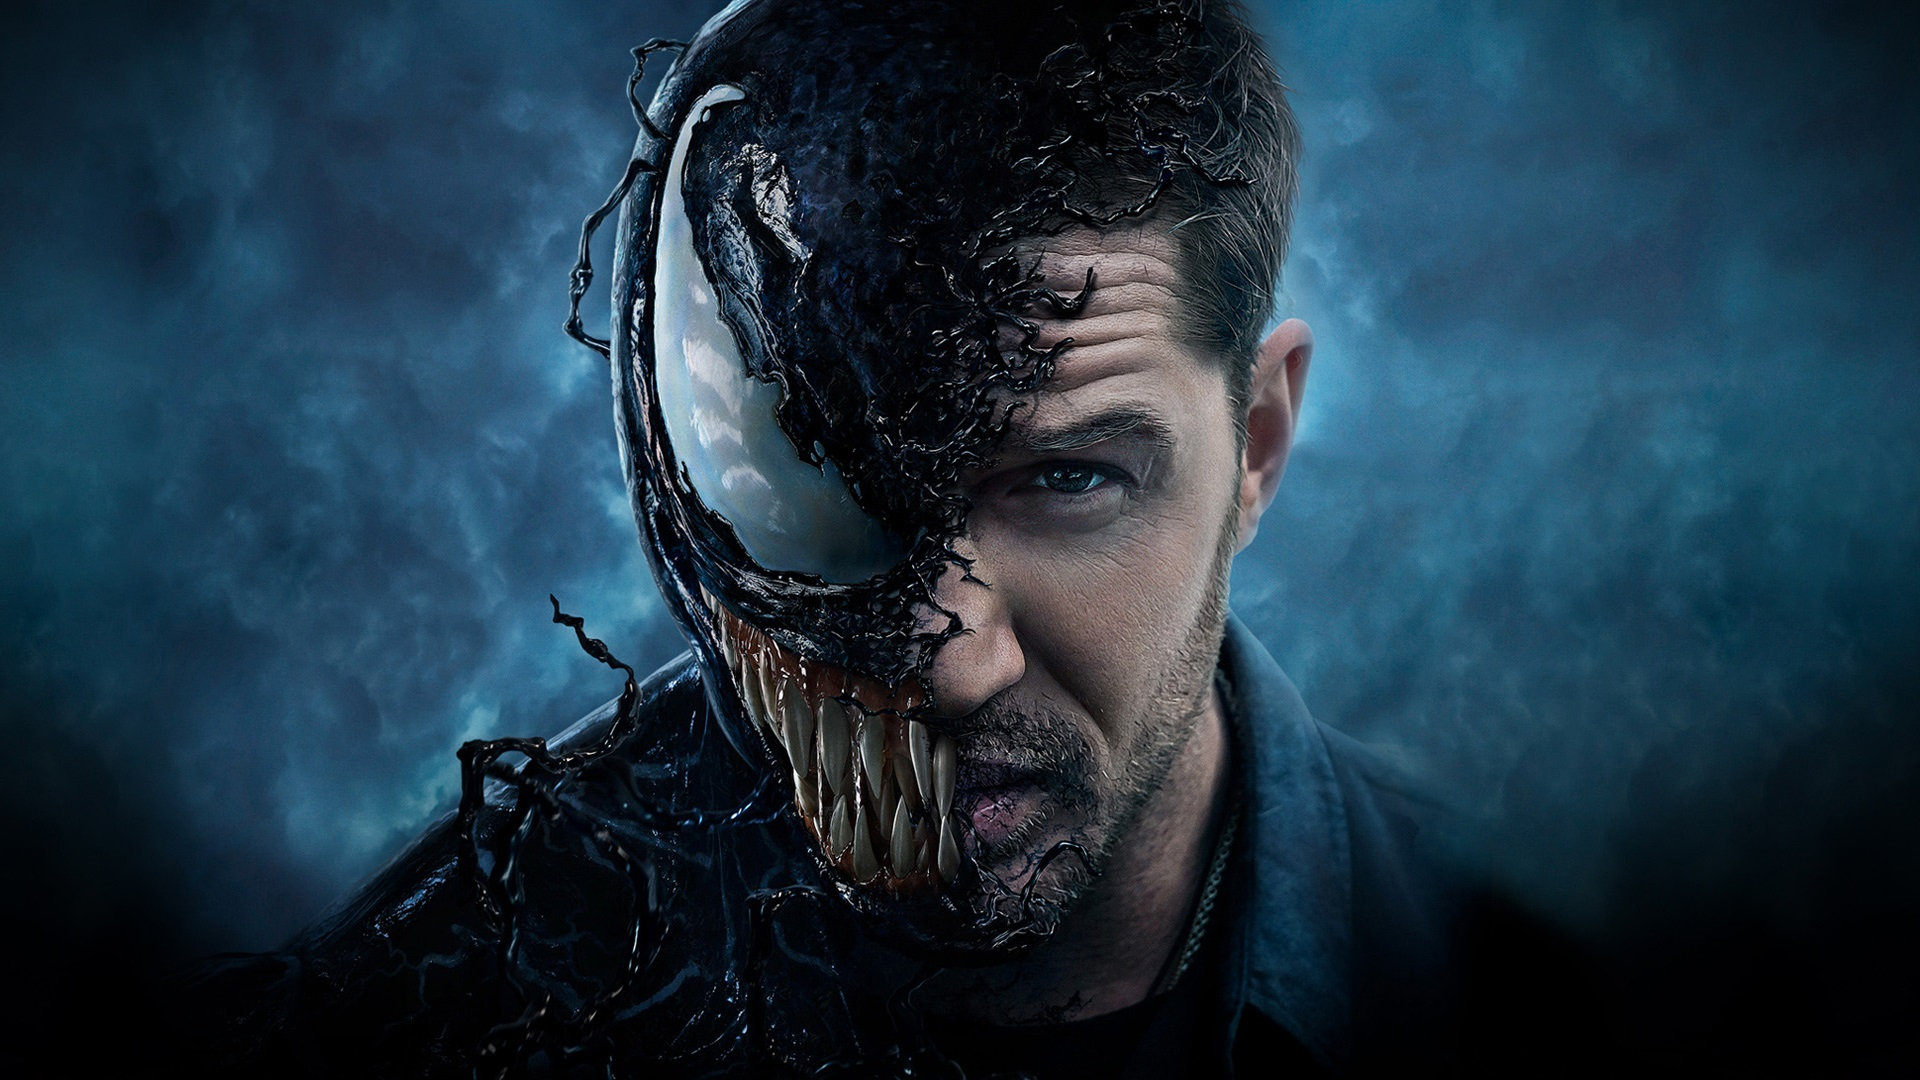 Venom Wallpapers Pictures Images: Venom Movie Fan Artwork, HD Movies, 4k Wallpapers, Images